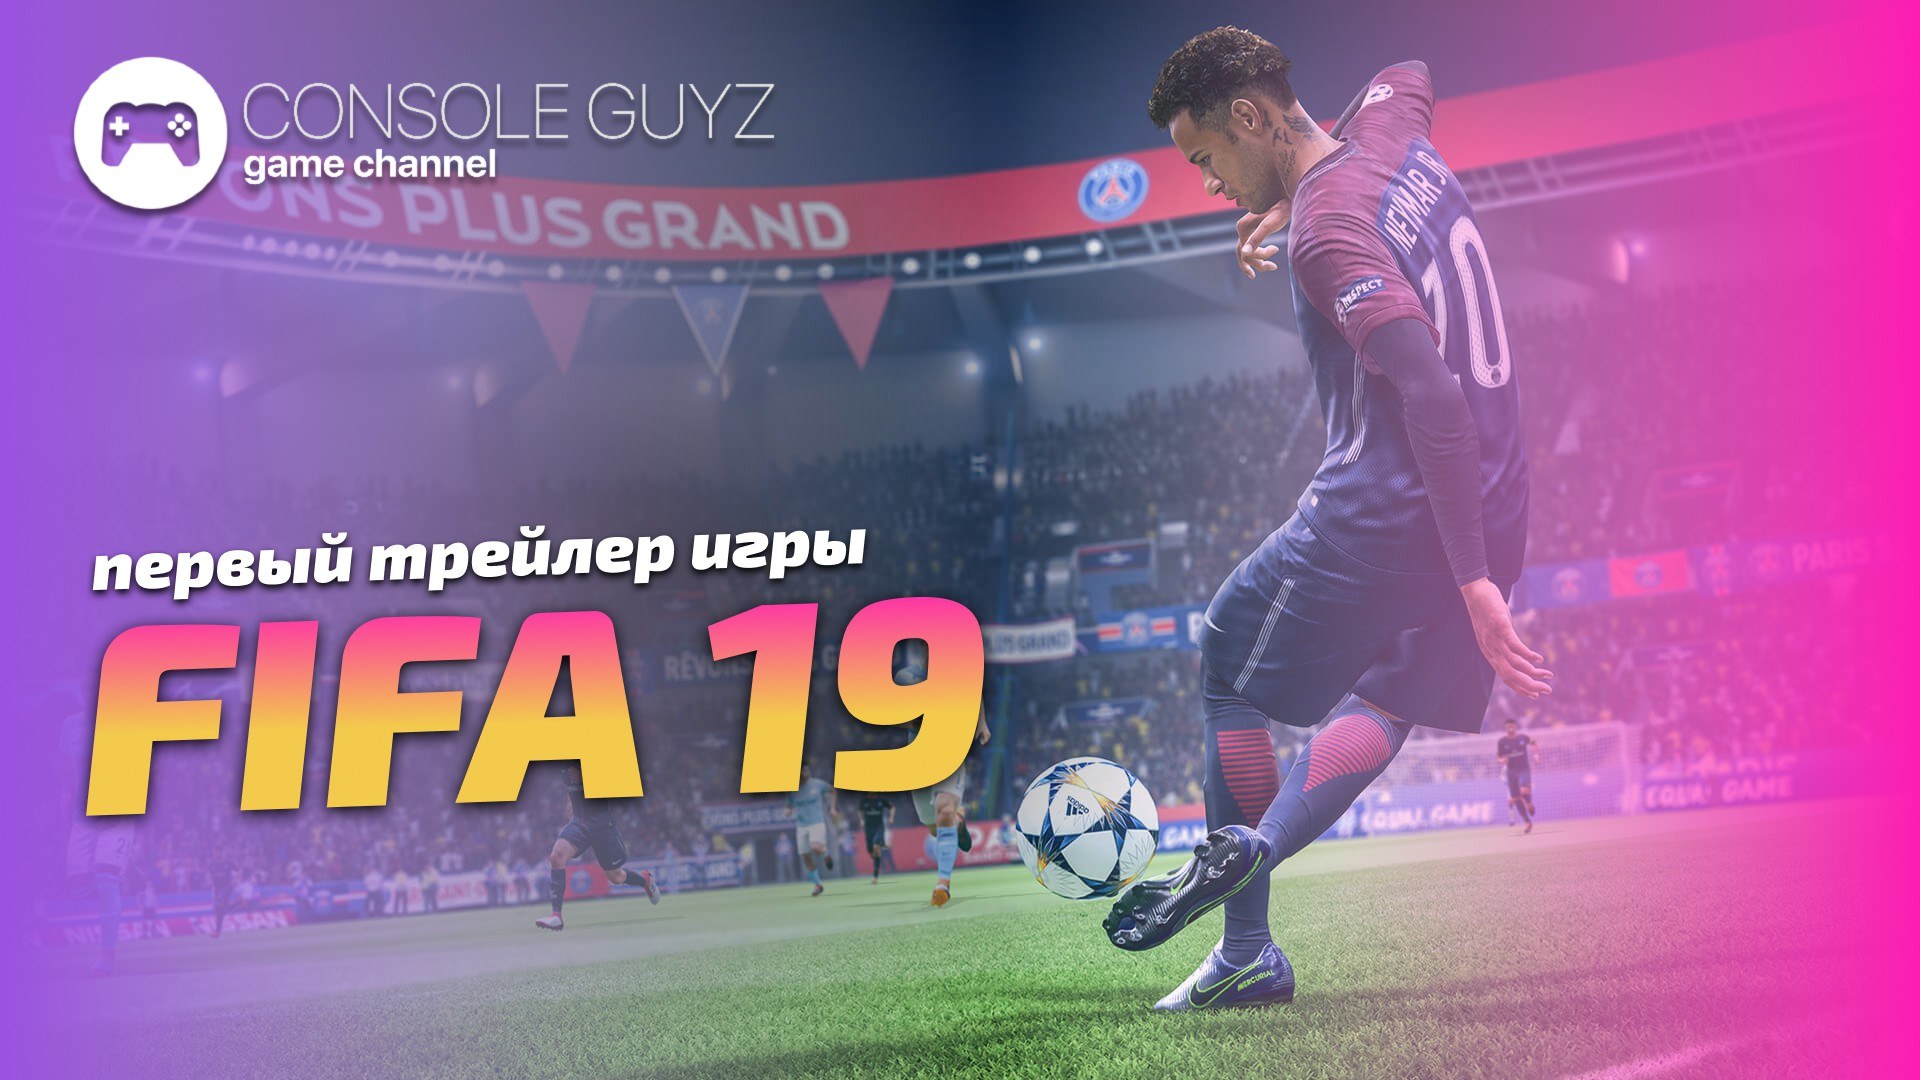 FIFA 19 cover by console guyz youtube channel трейлер на русском